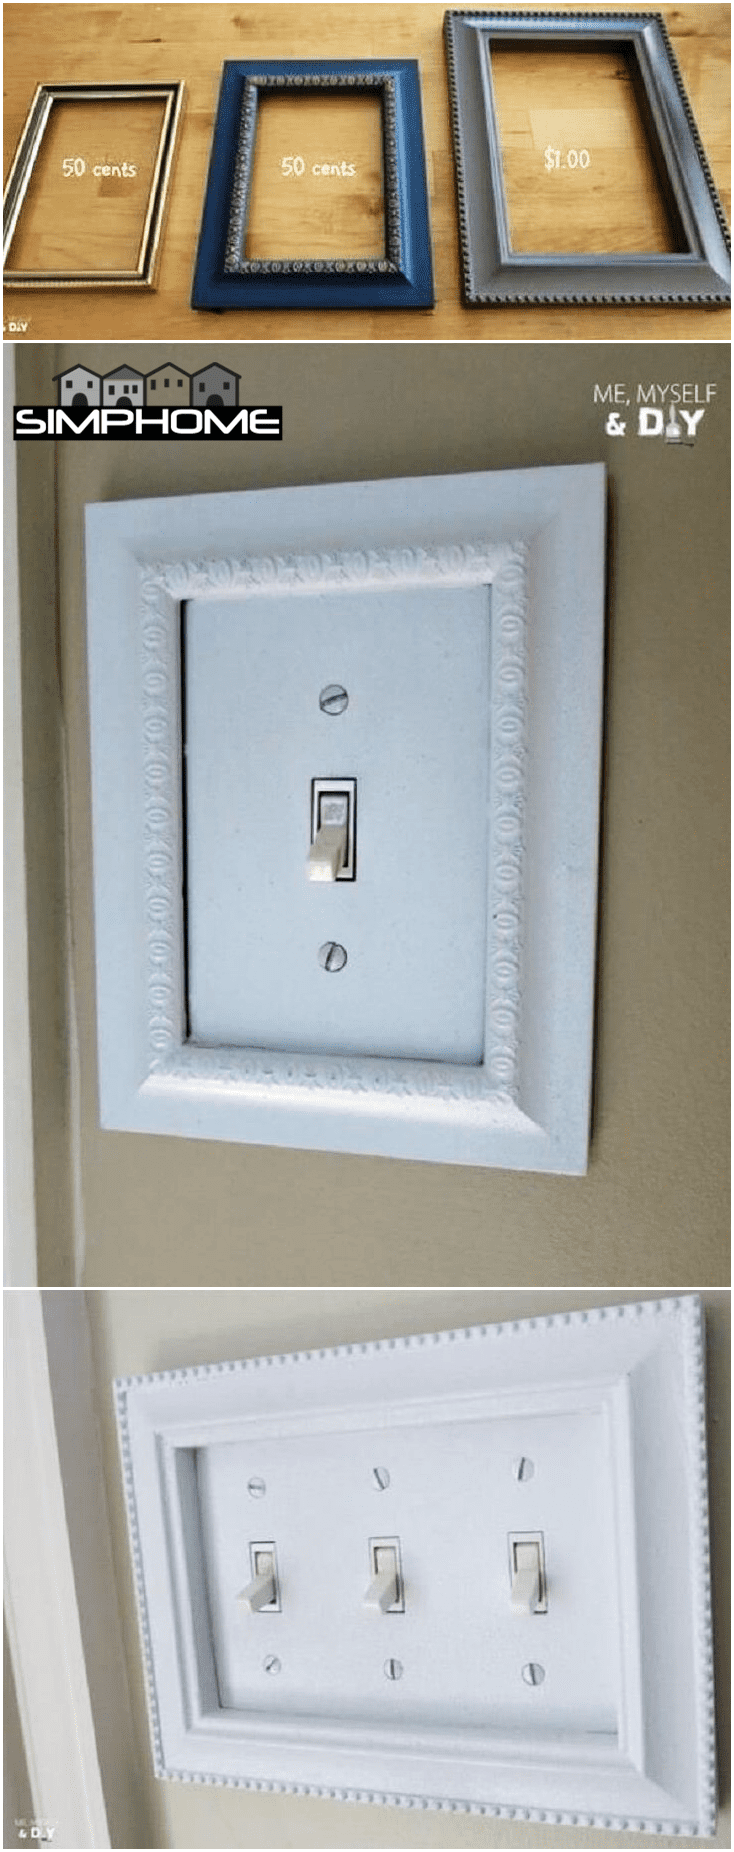 2.Frame the Light Switch via Simphome.com